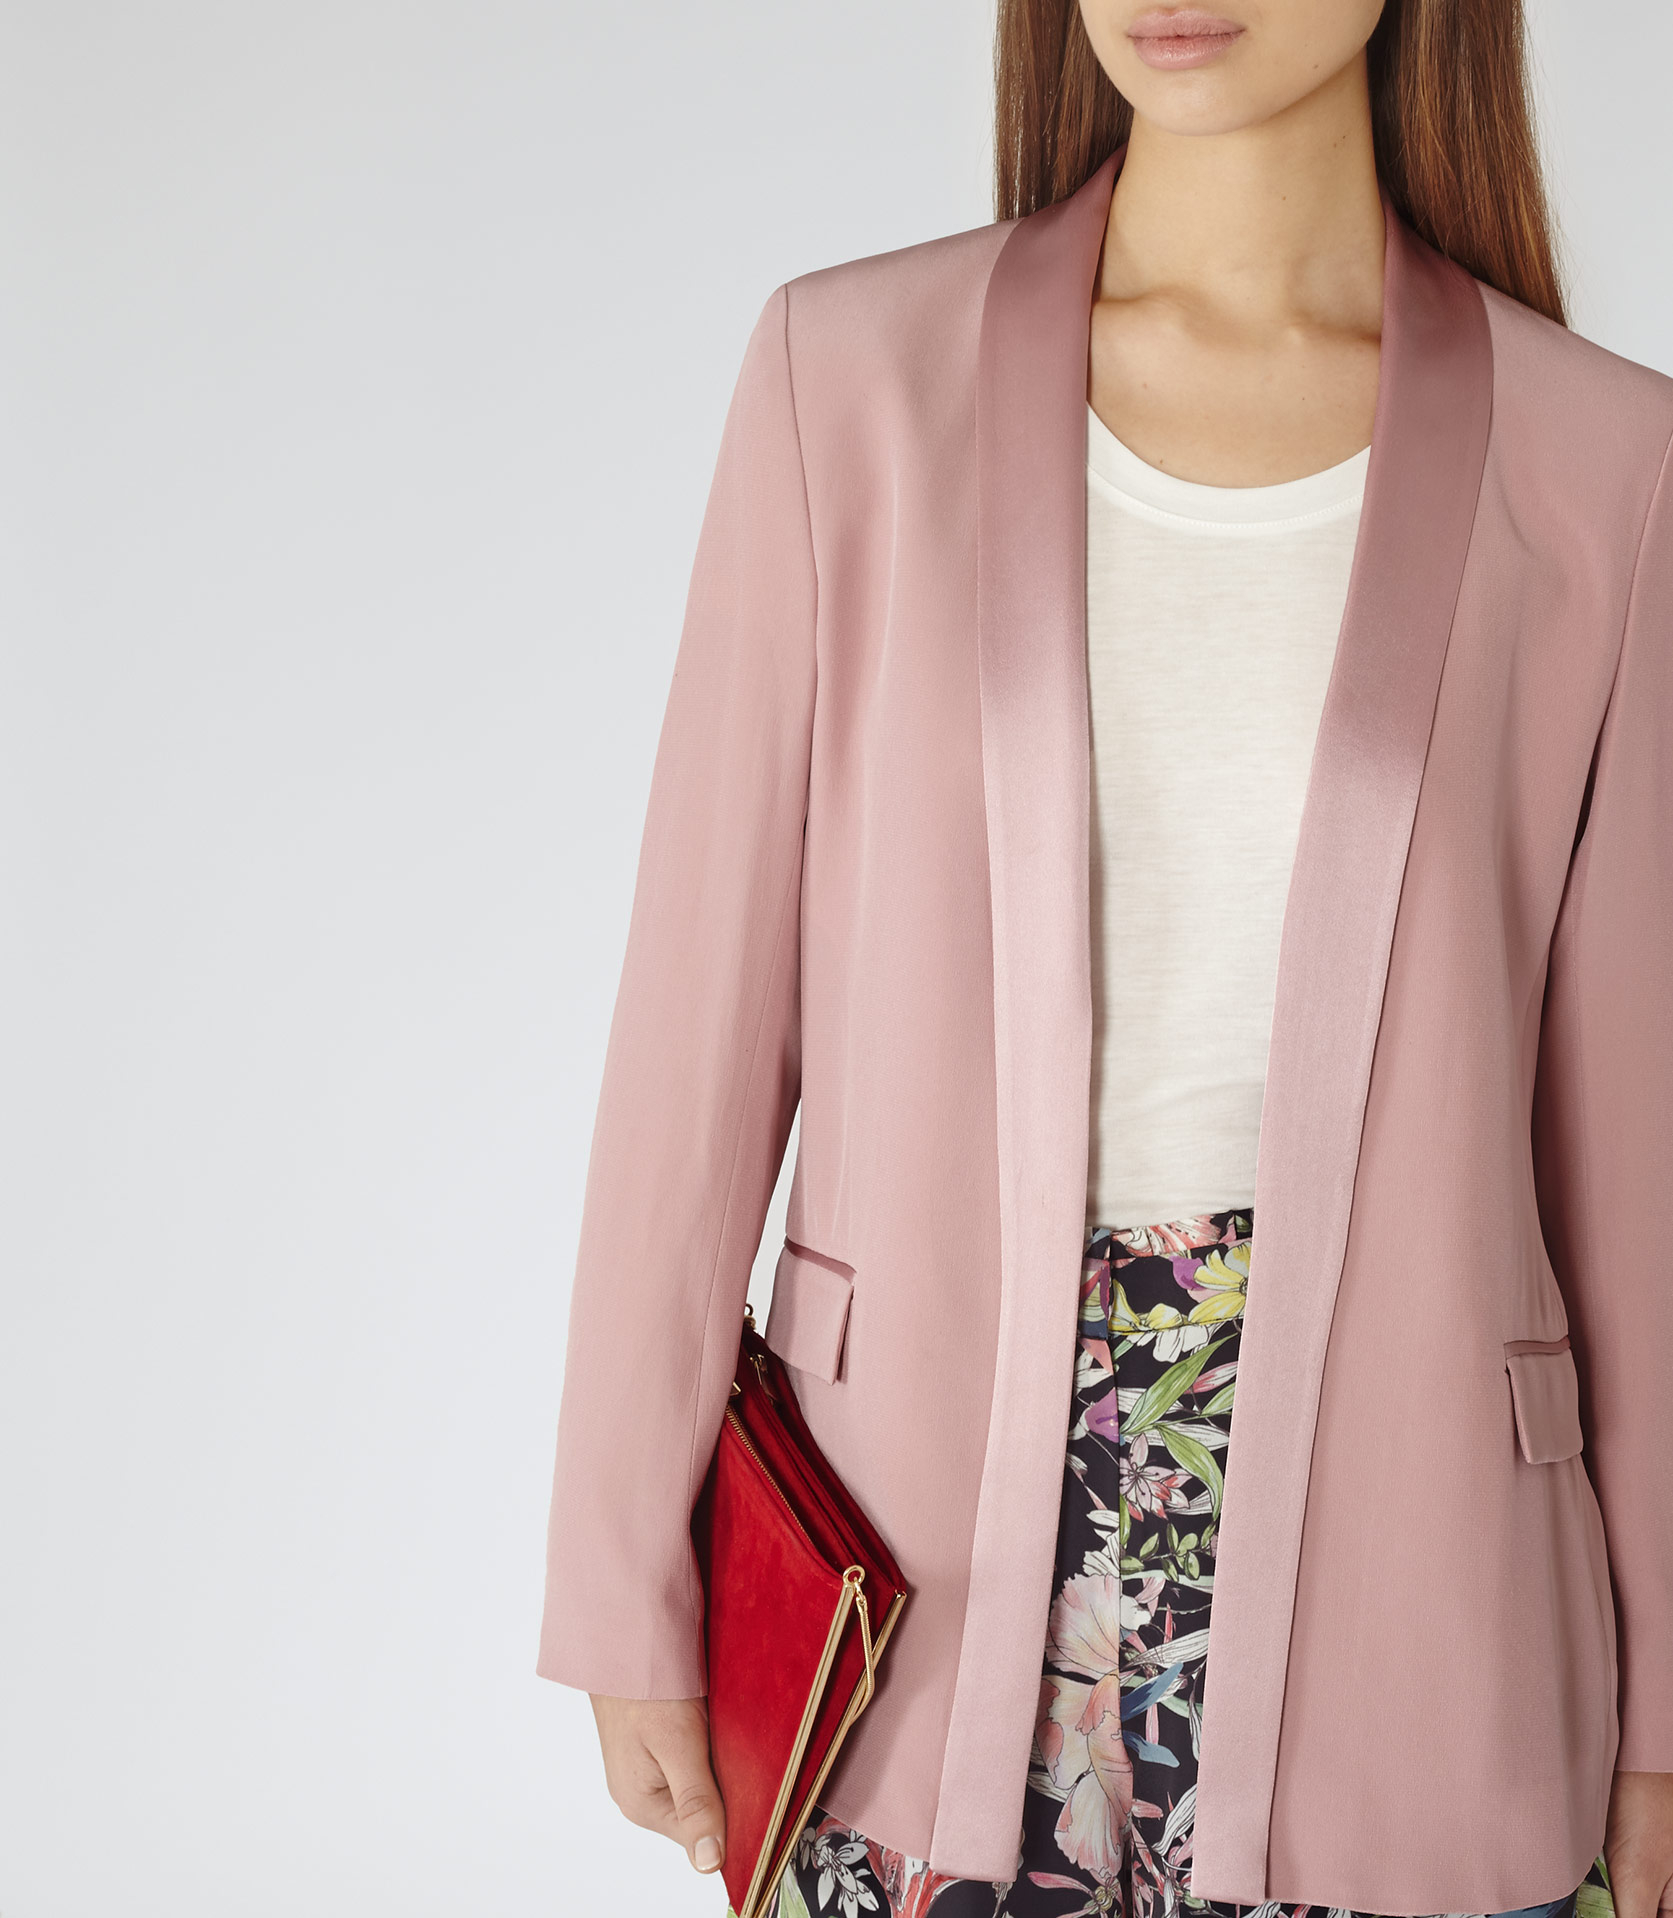 Reiss Charlize Sharply Tailored Jacket in Pink | Lyst